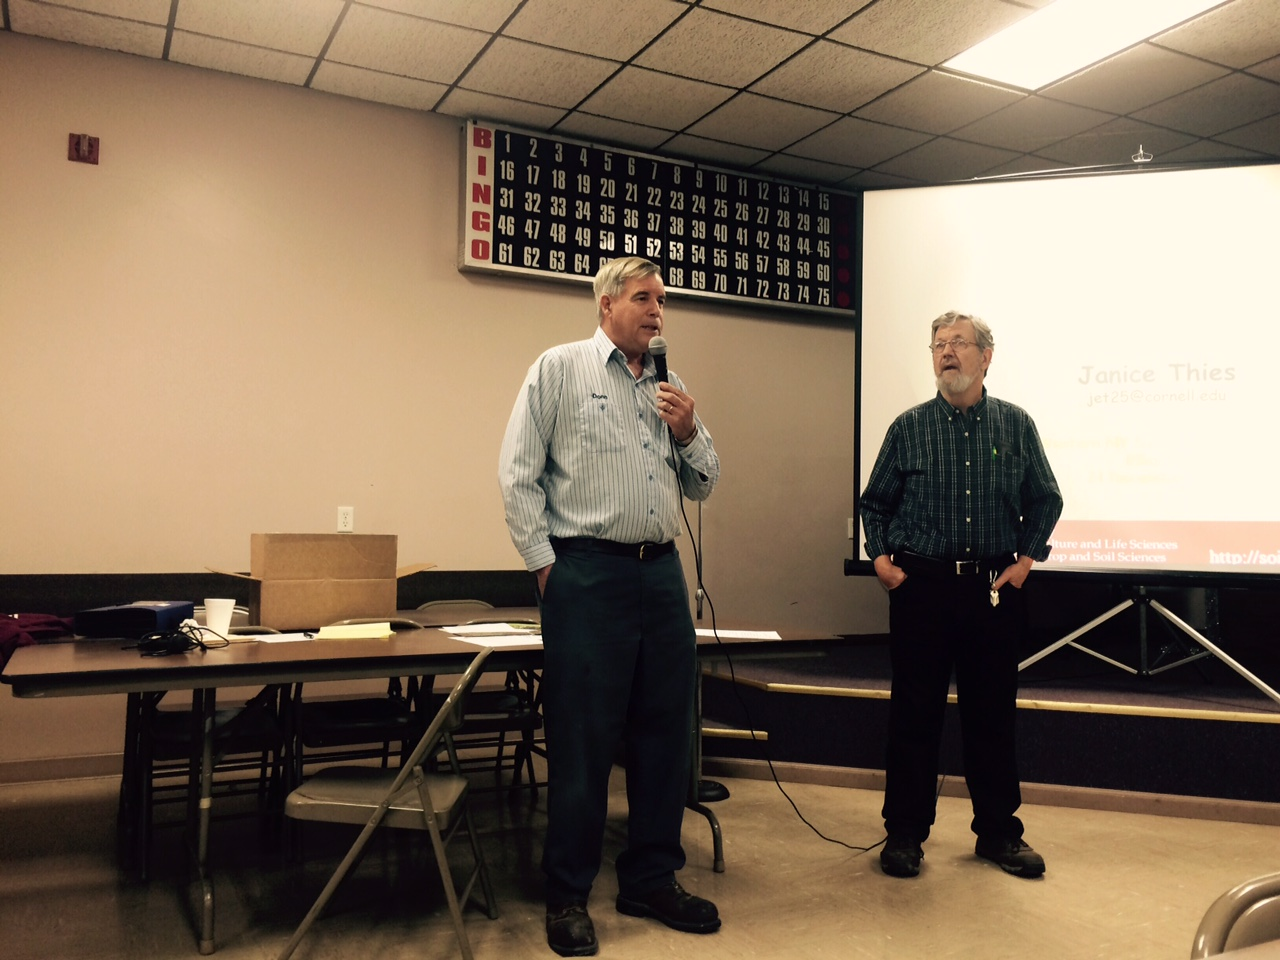 WNY Soil Health Alliance President Donn Branton, and secretary/treasurer Dennis Kirby welcome workshop attendees.